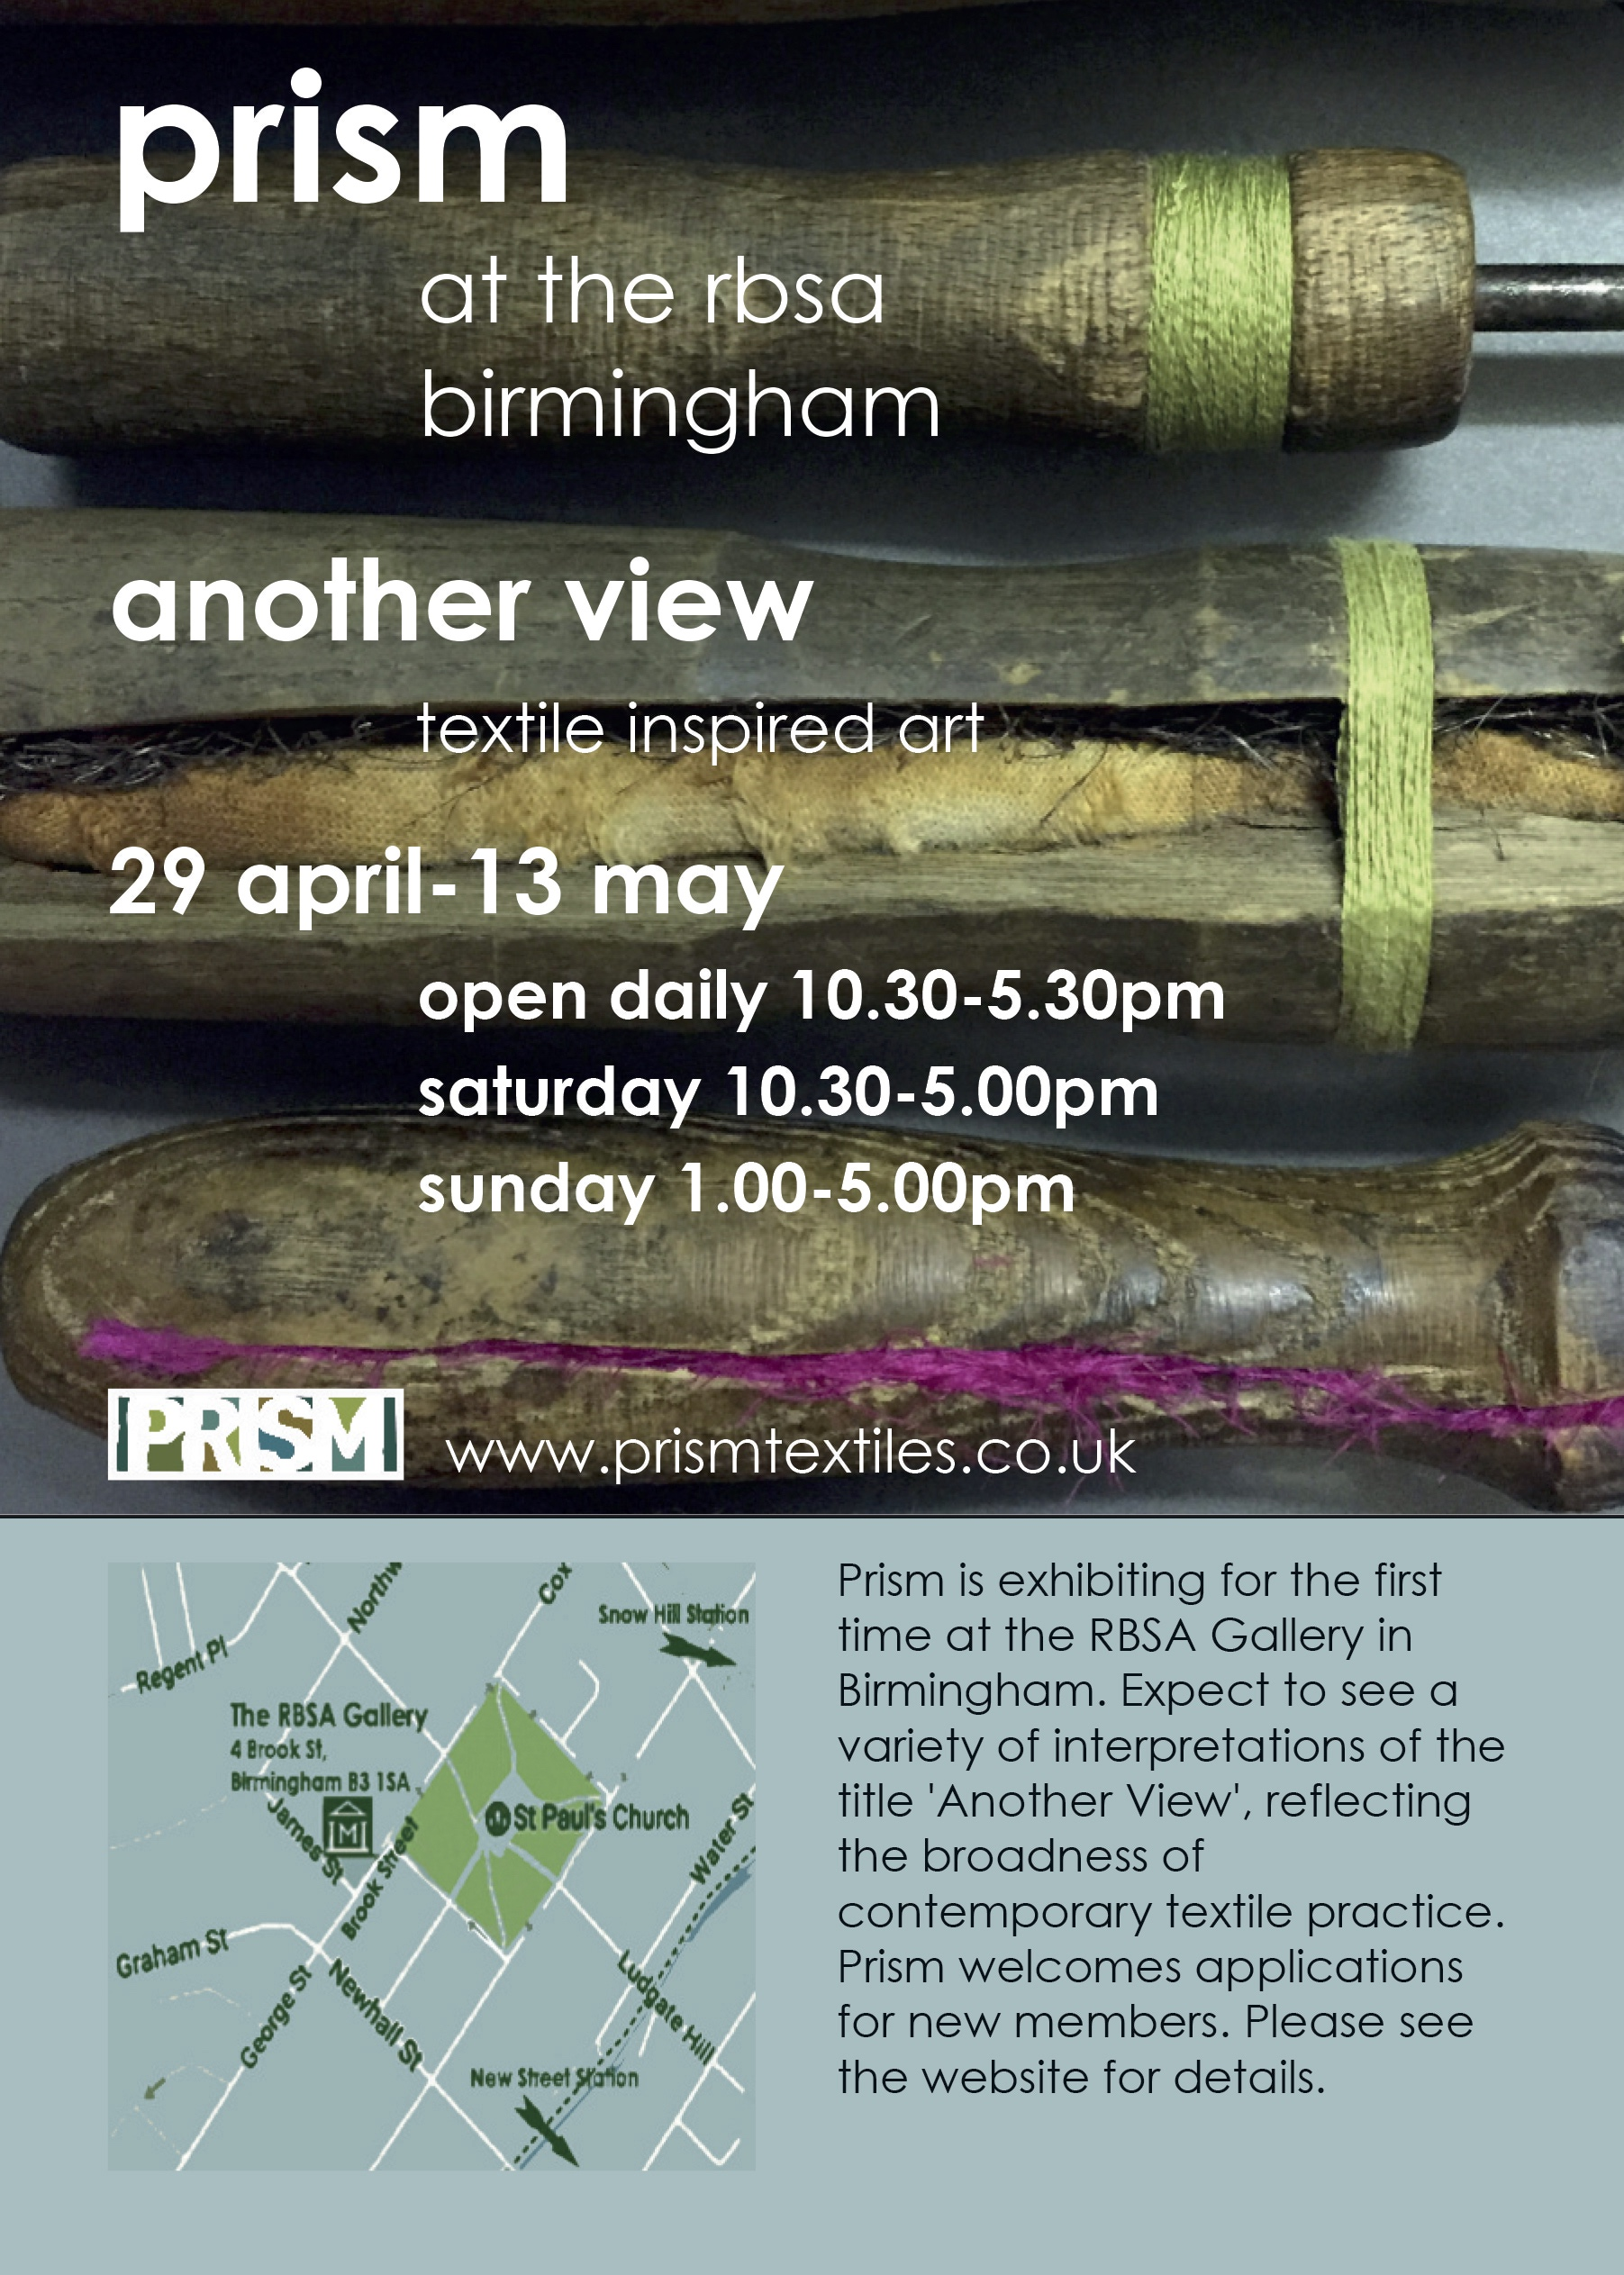 Claire will be exhibiting some of the Dorothy Smith work with Prism at the RBSA in Birmingham  29thApril - 13thMay 2017.